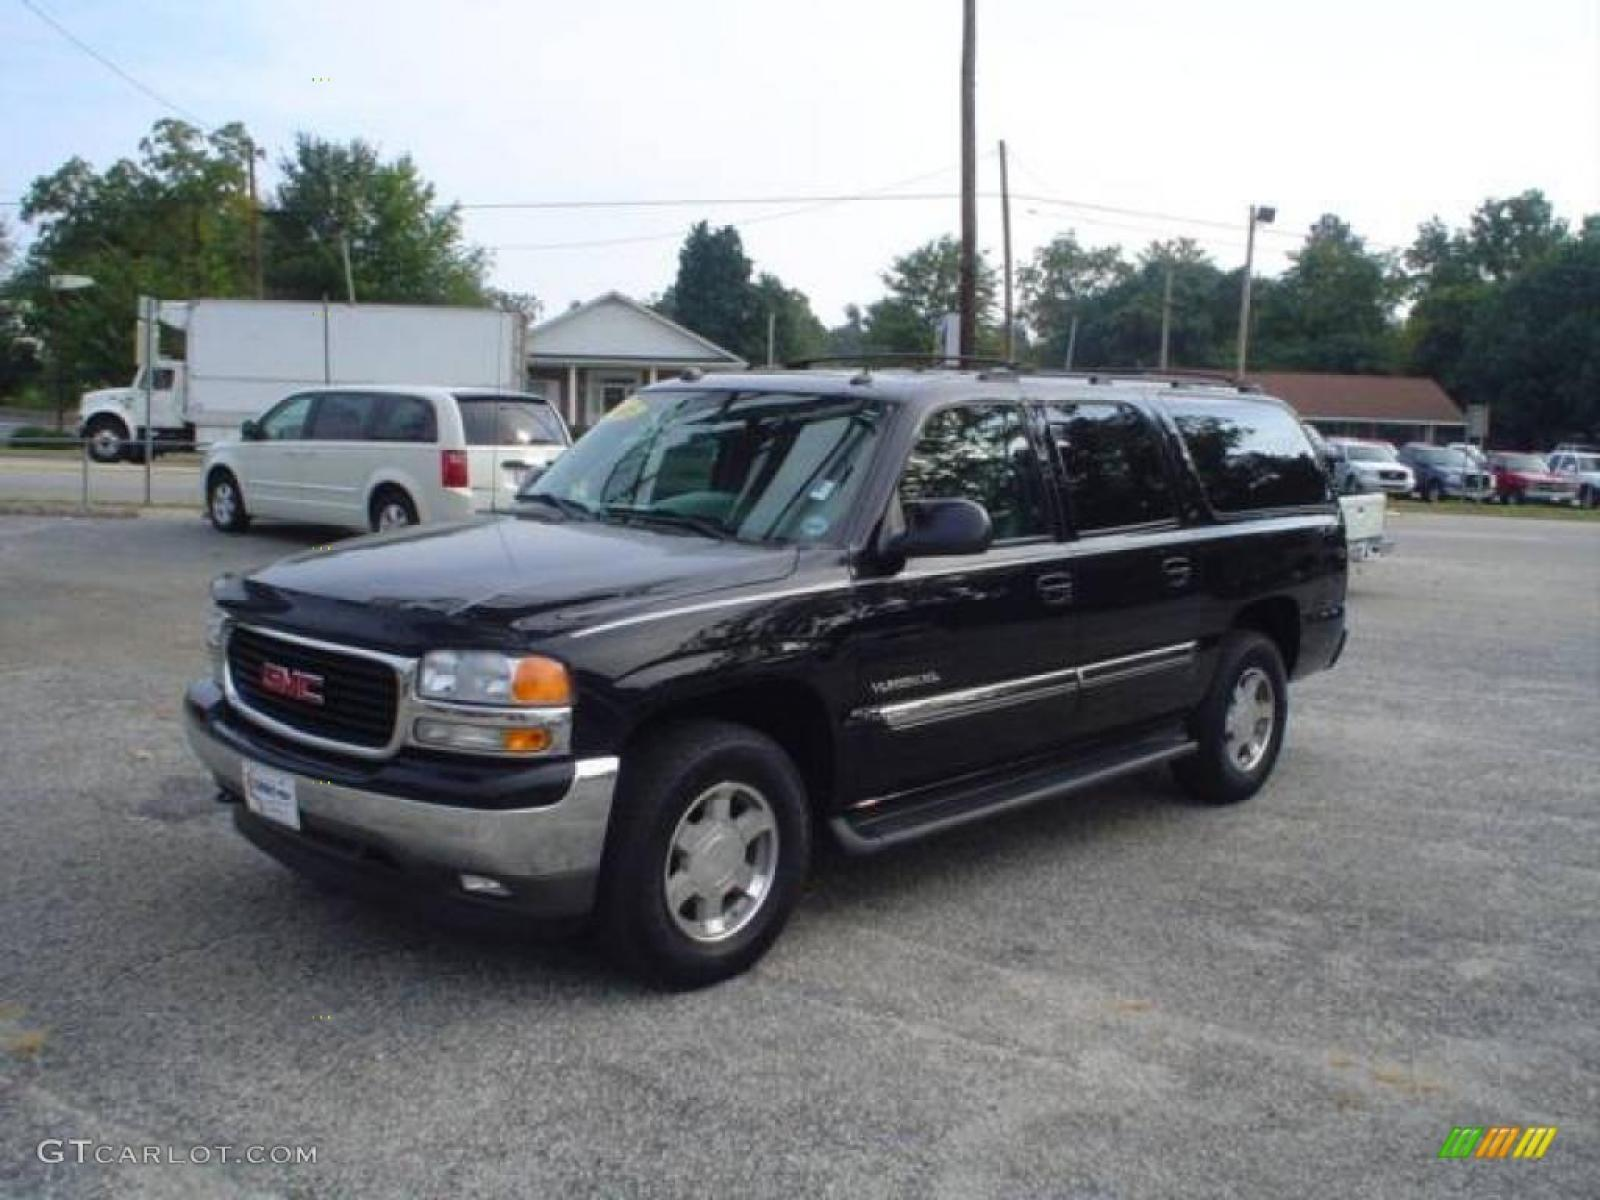 2005 gmc yukon xl 9 gmc yukon xl 9 800 1024 1280 1600 origin